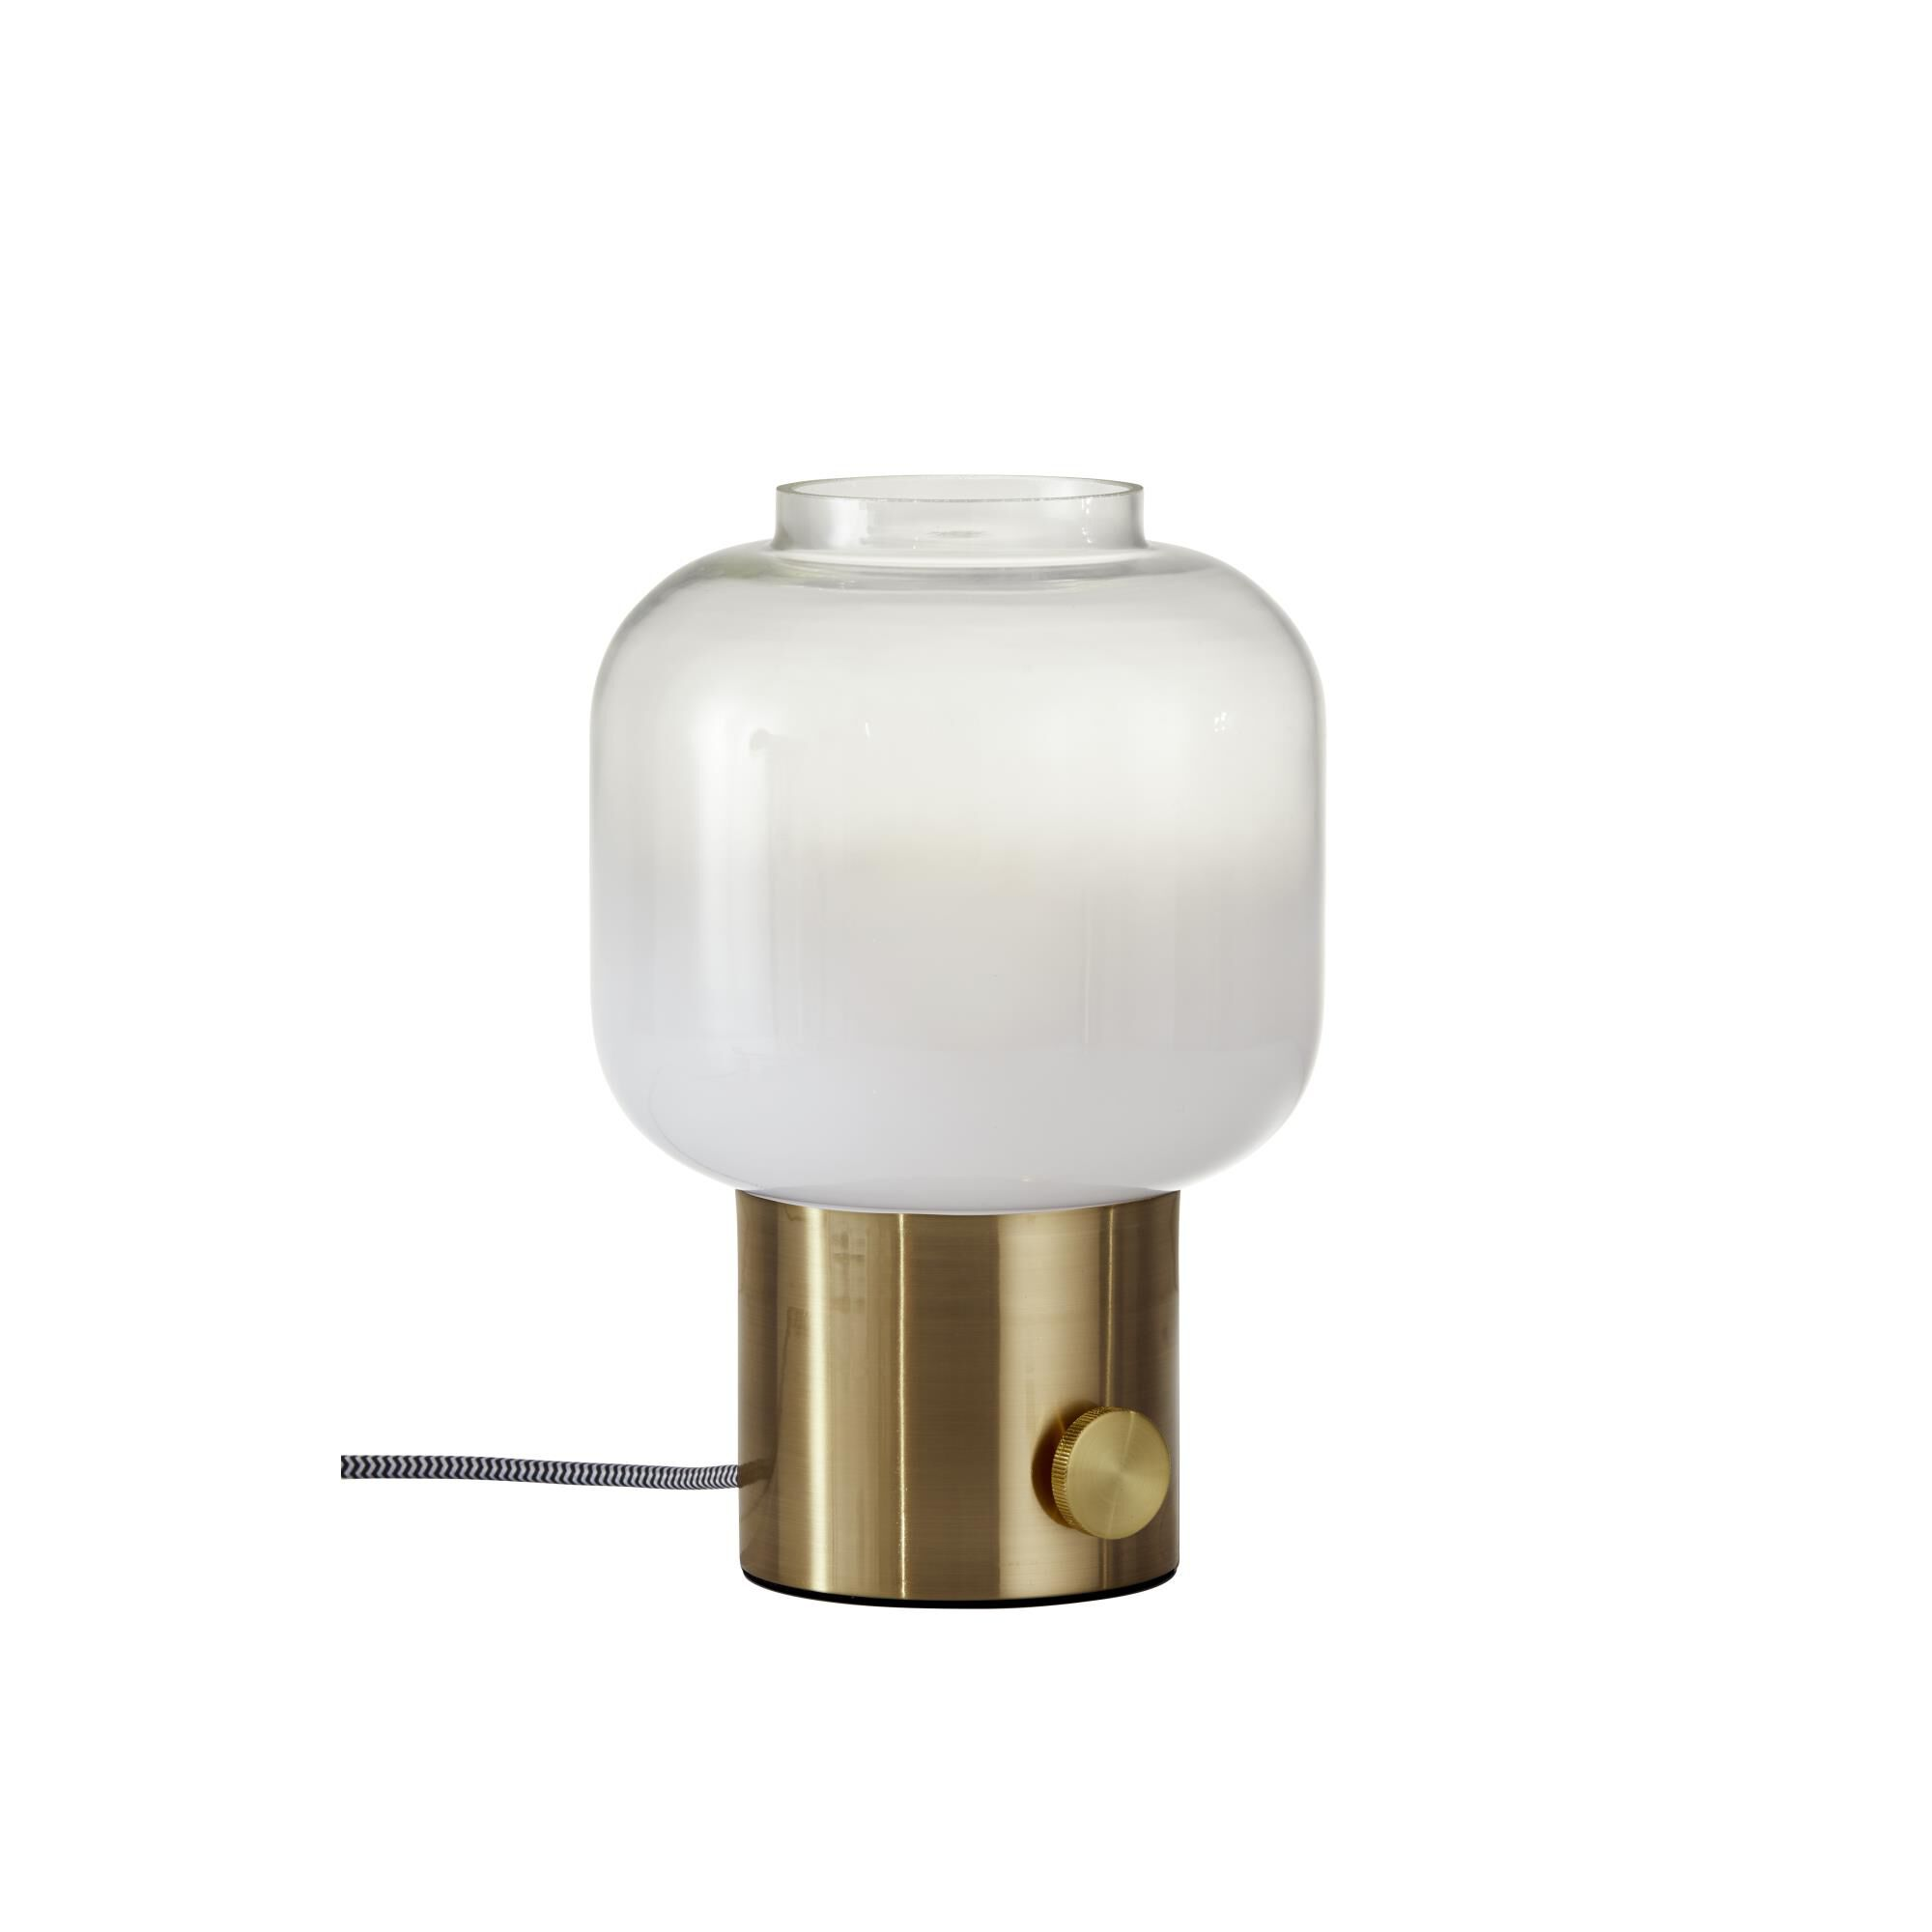 Adesso Lewis Accent Lamp Lewis - 6027-21 - Transitional Accent Lamp